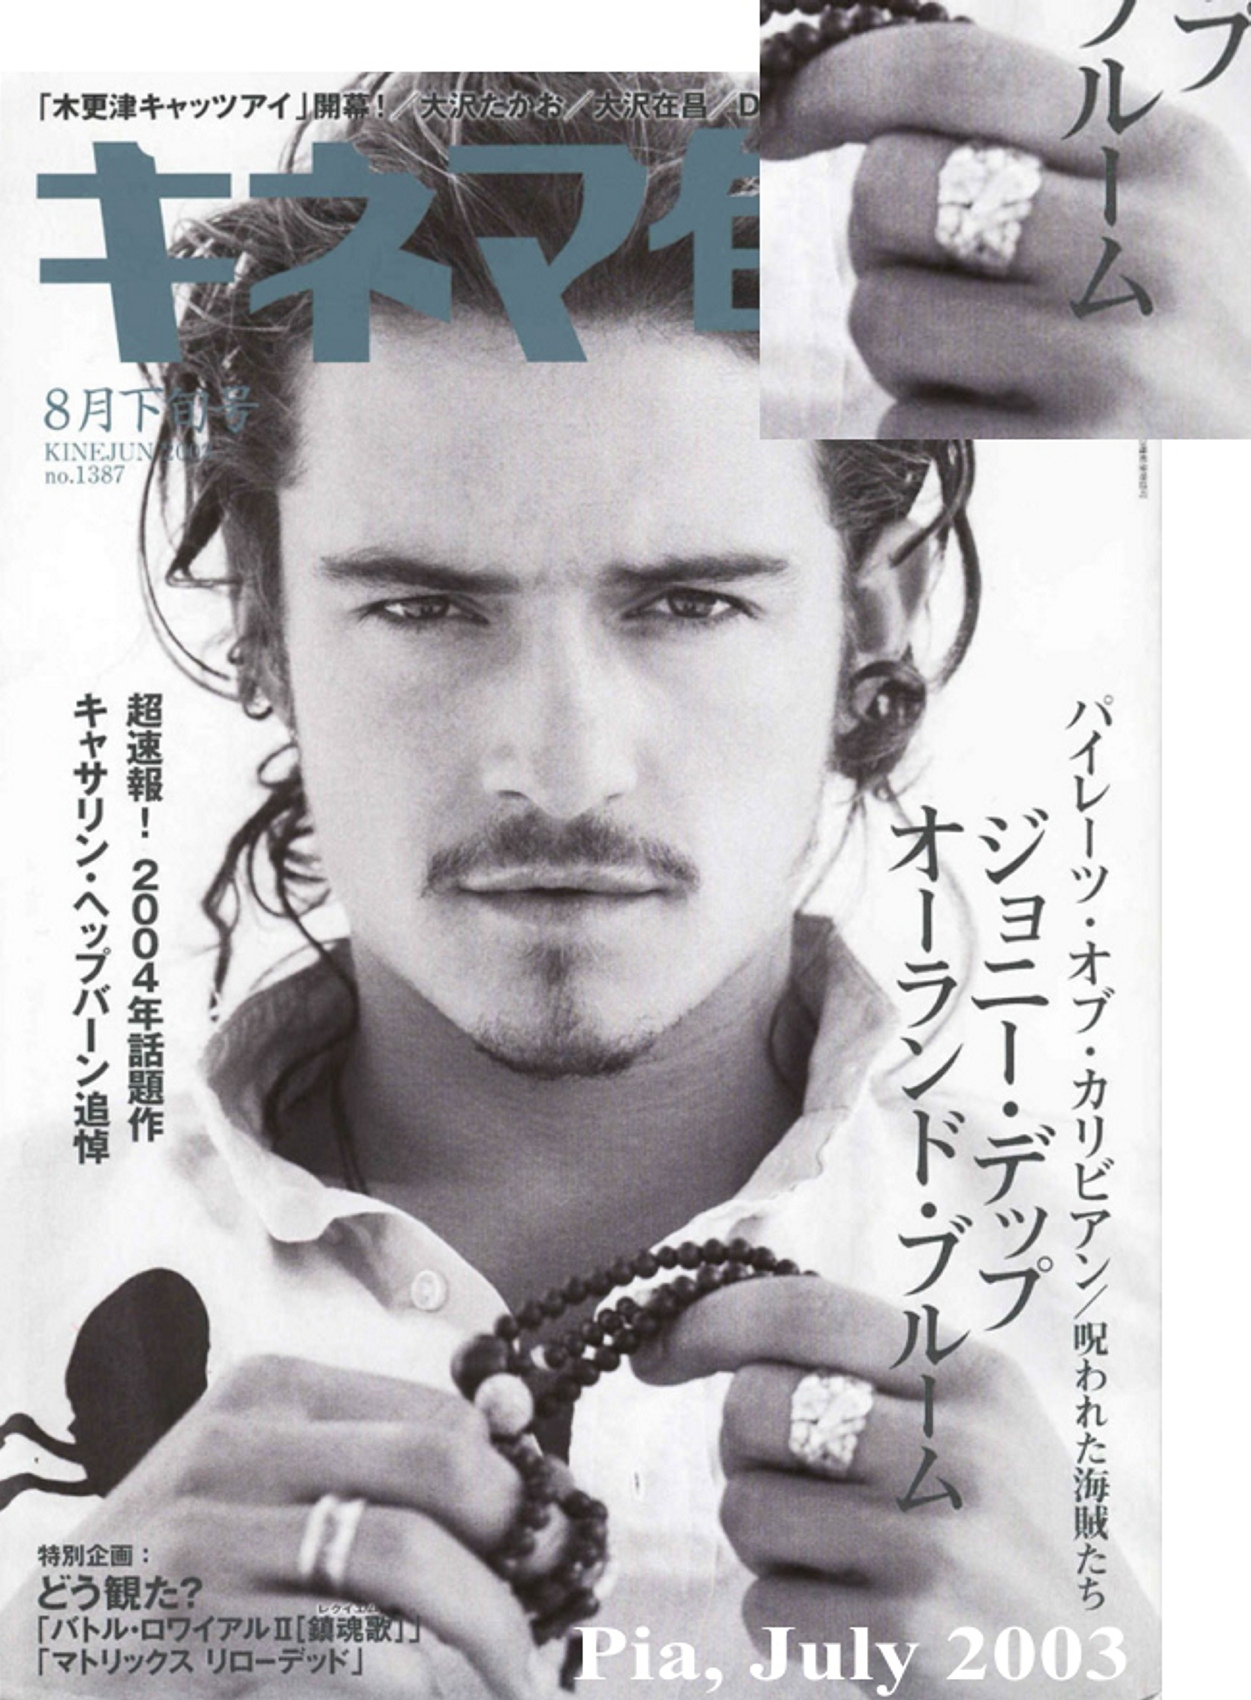 orlando bloom, actor, personal colection - woven ring in silver and gold created by patricia gurgel-segrillo